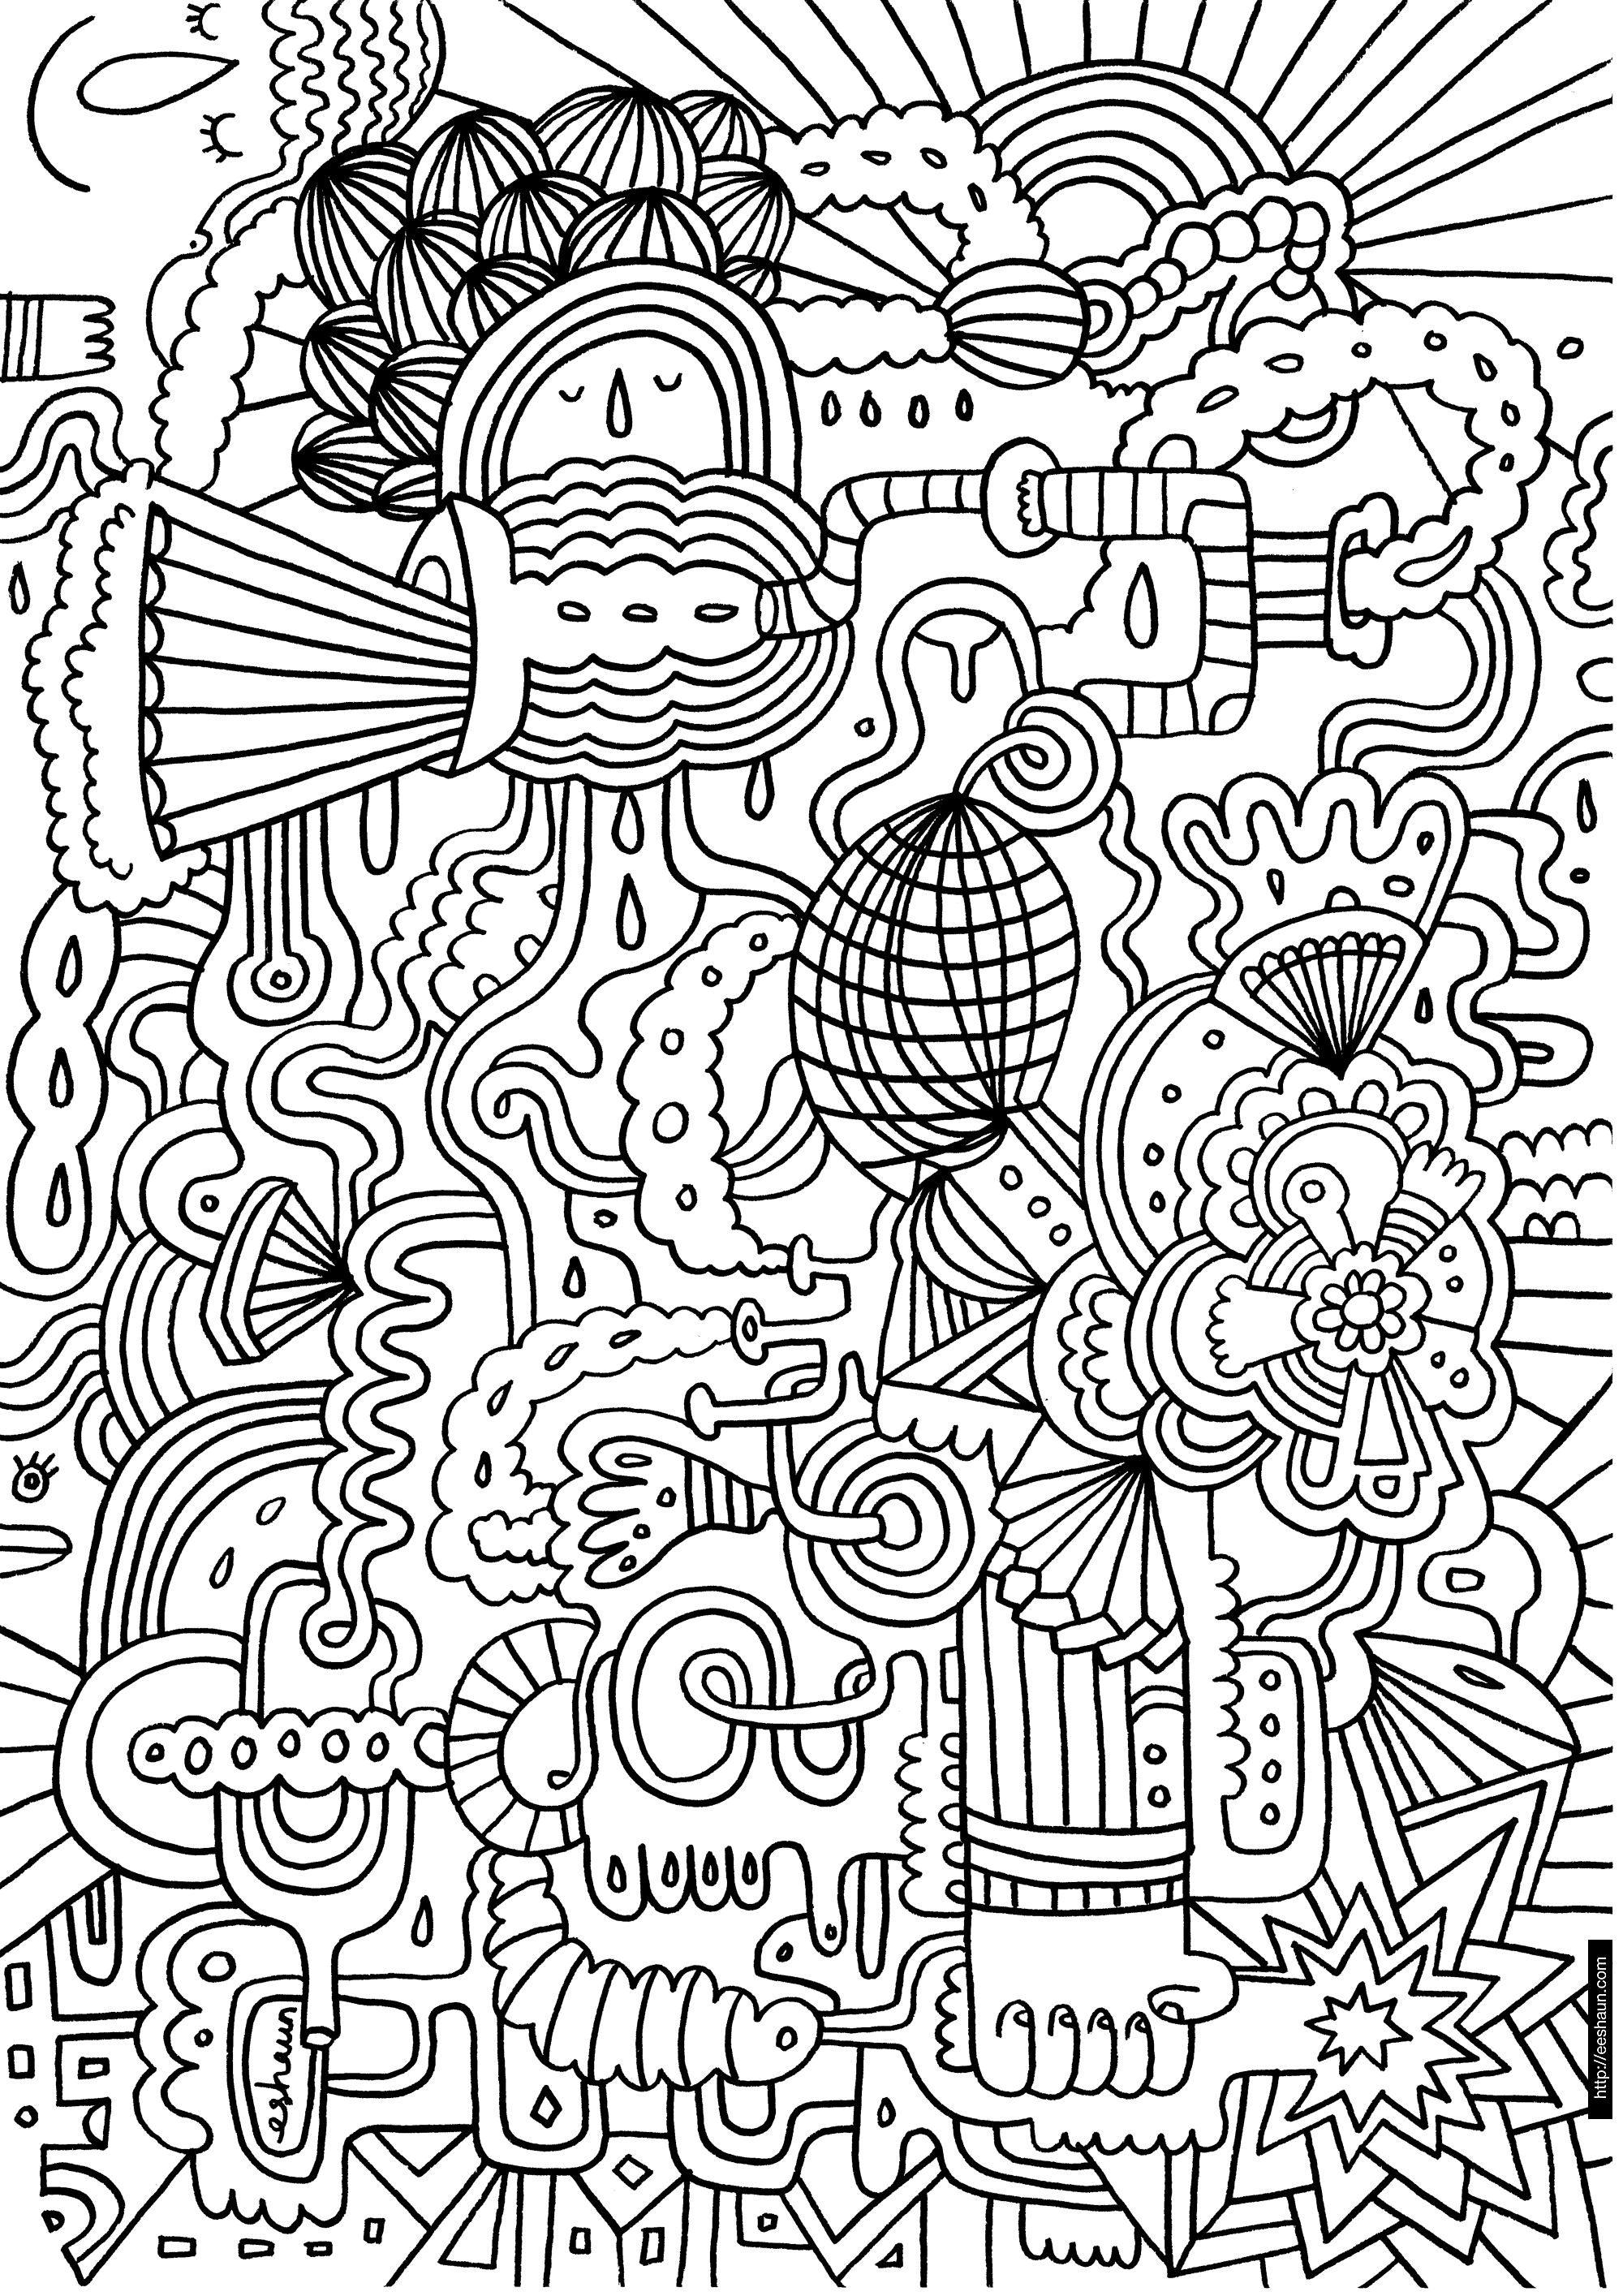 pattern coloring sheets pattern coloring pages best coloring pages for kids pattern sheets coloring